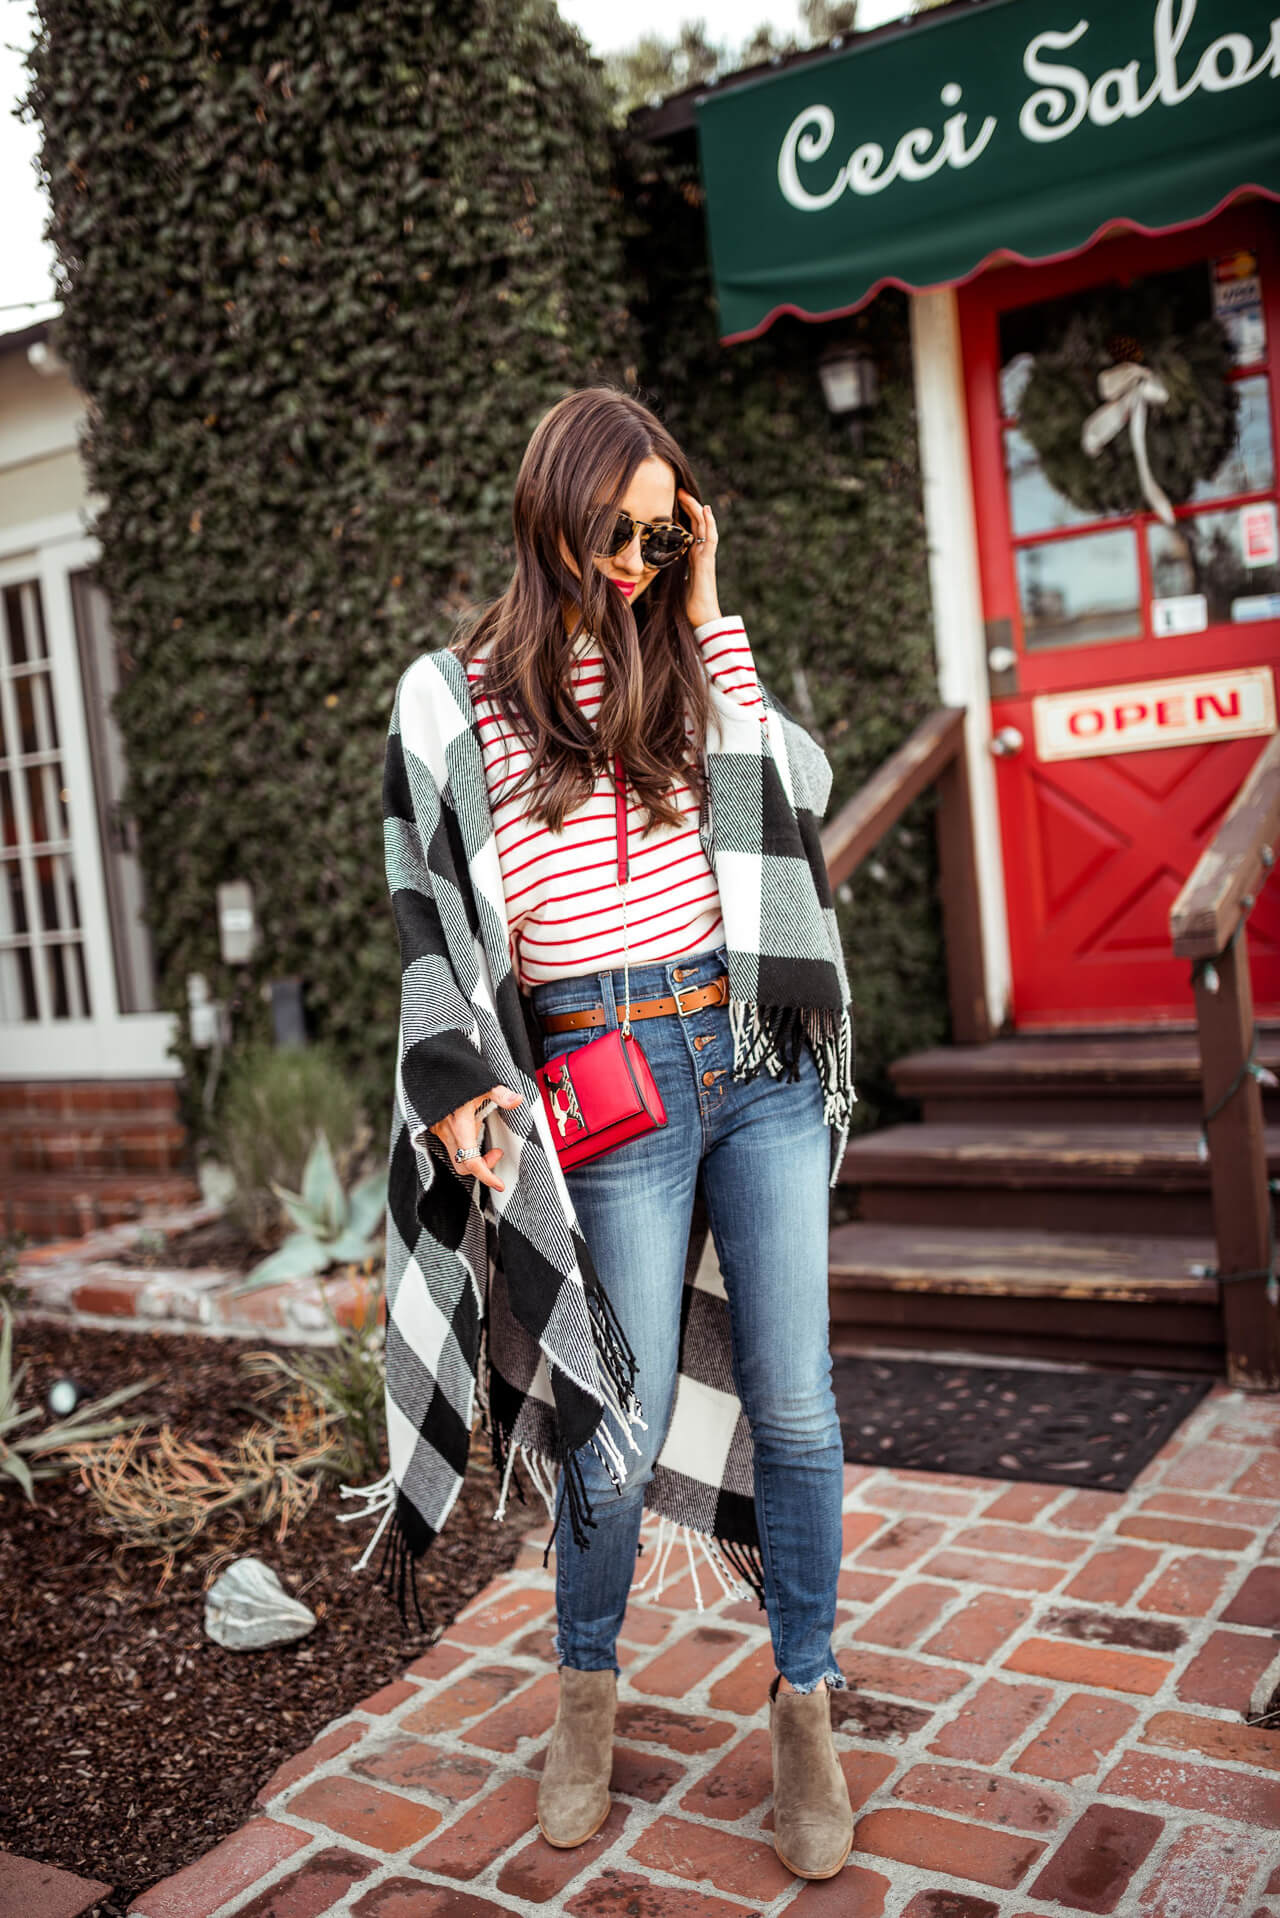 mixing stripes and plaid together in this look